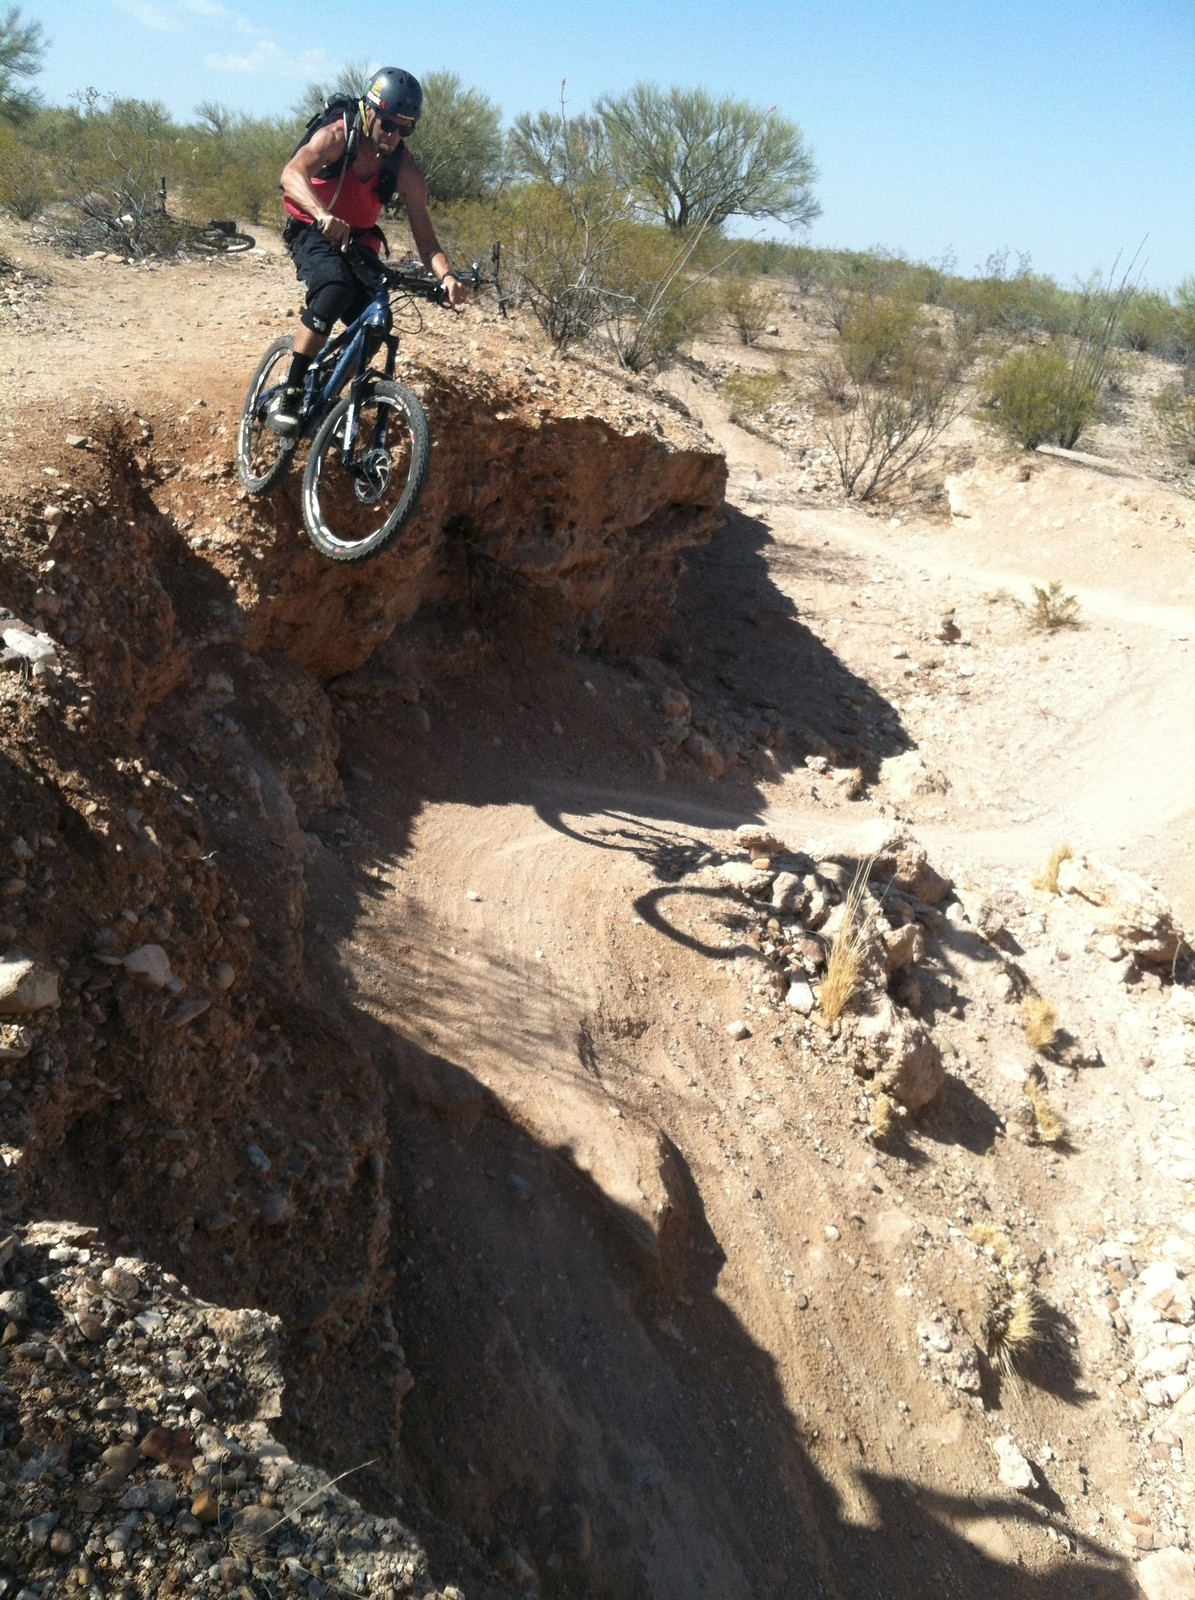 Droppin' In - JordanJoker10 - Mountain Biking Pictures - Vital MTB